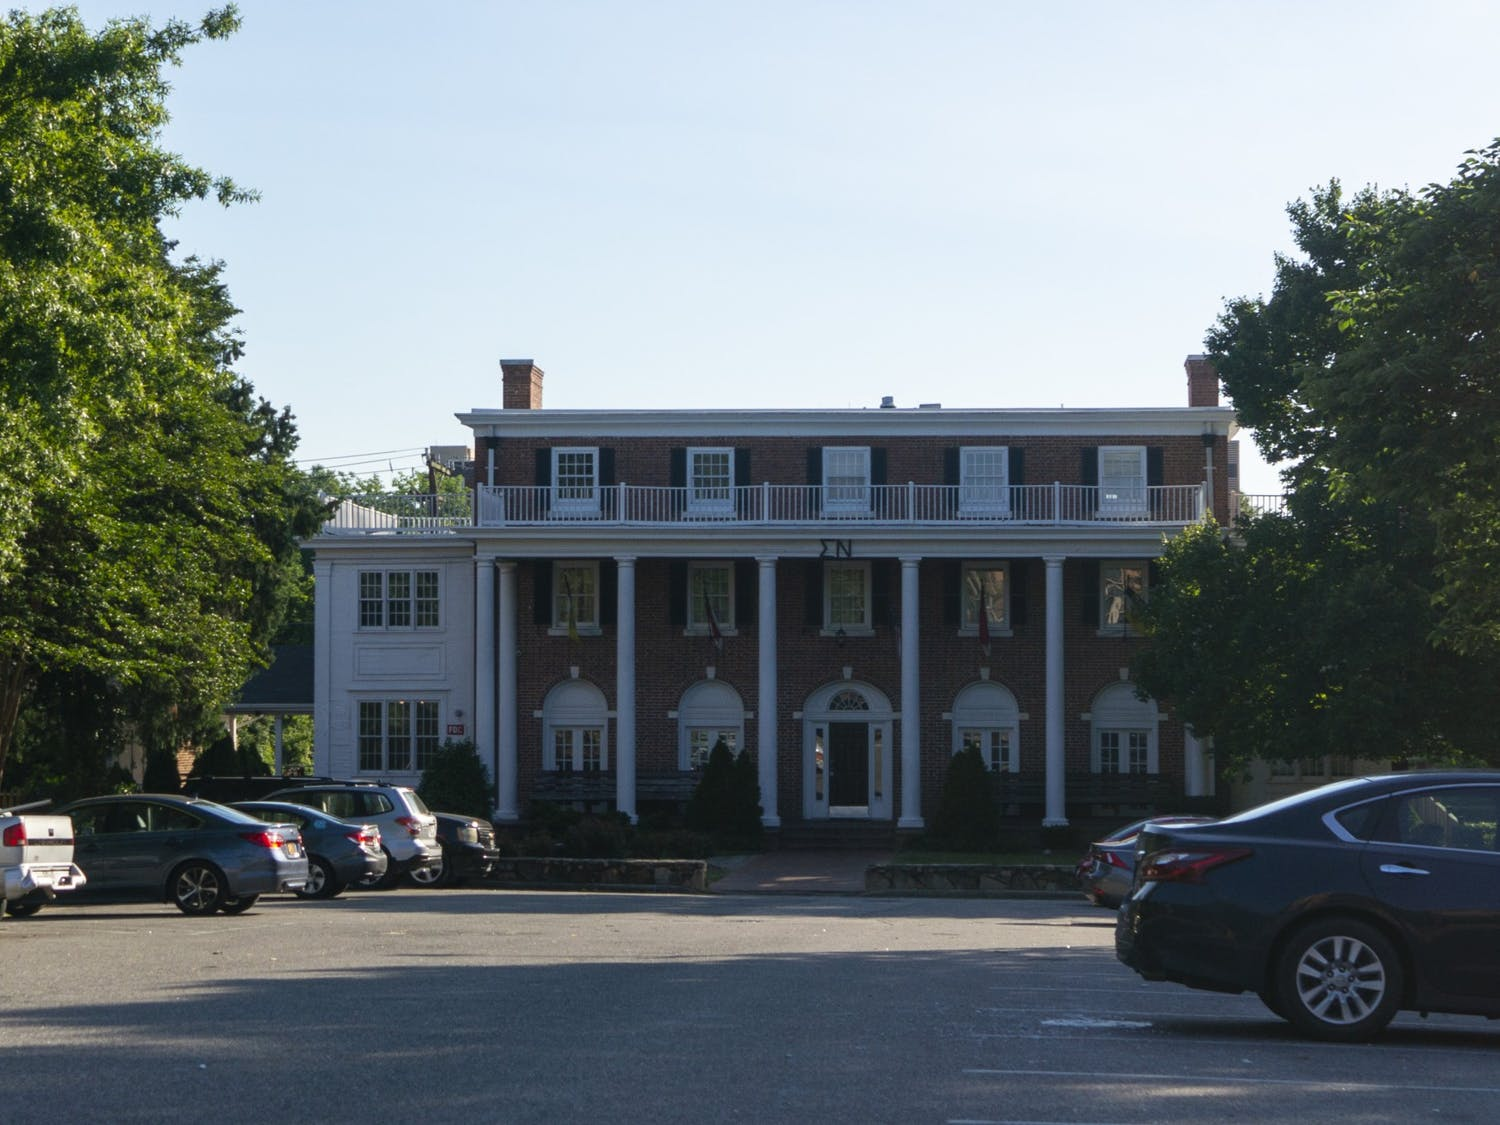 UNC's Sigma Nu fraternity house as pictured on Sunday, June 7, 2020.